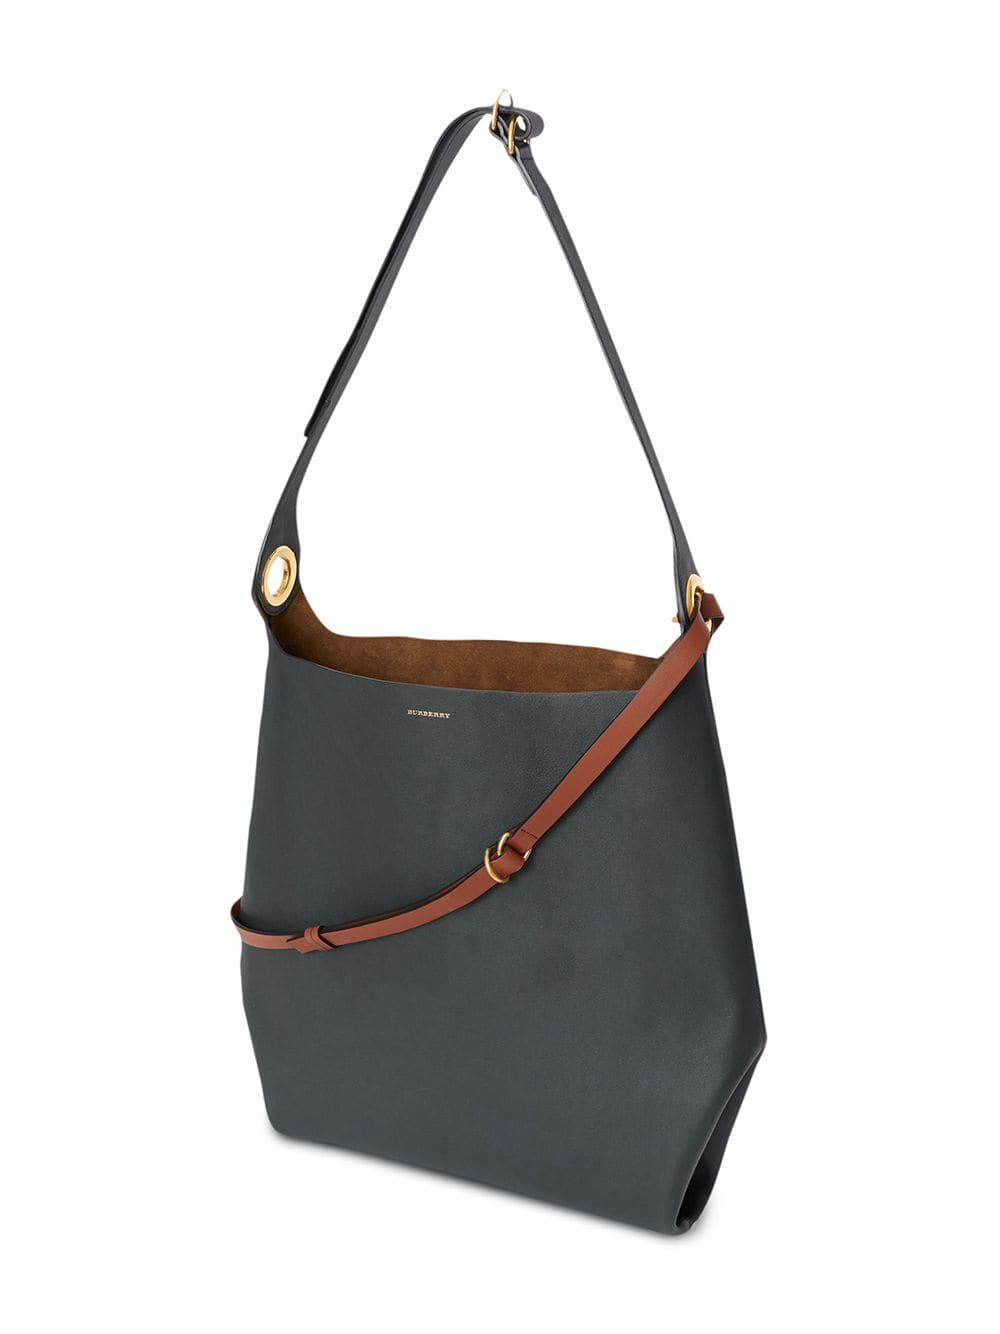 Burberry - Blue The Leather Grommet Detail Bag - Lyst. View fullscreen 0c69f2a67b